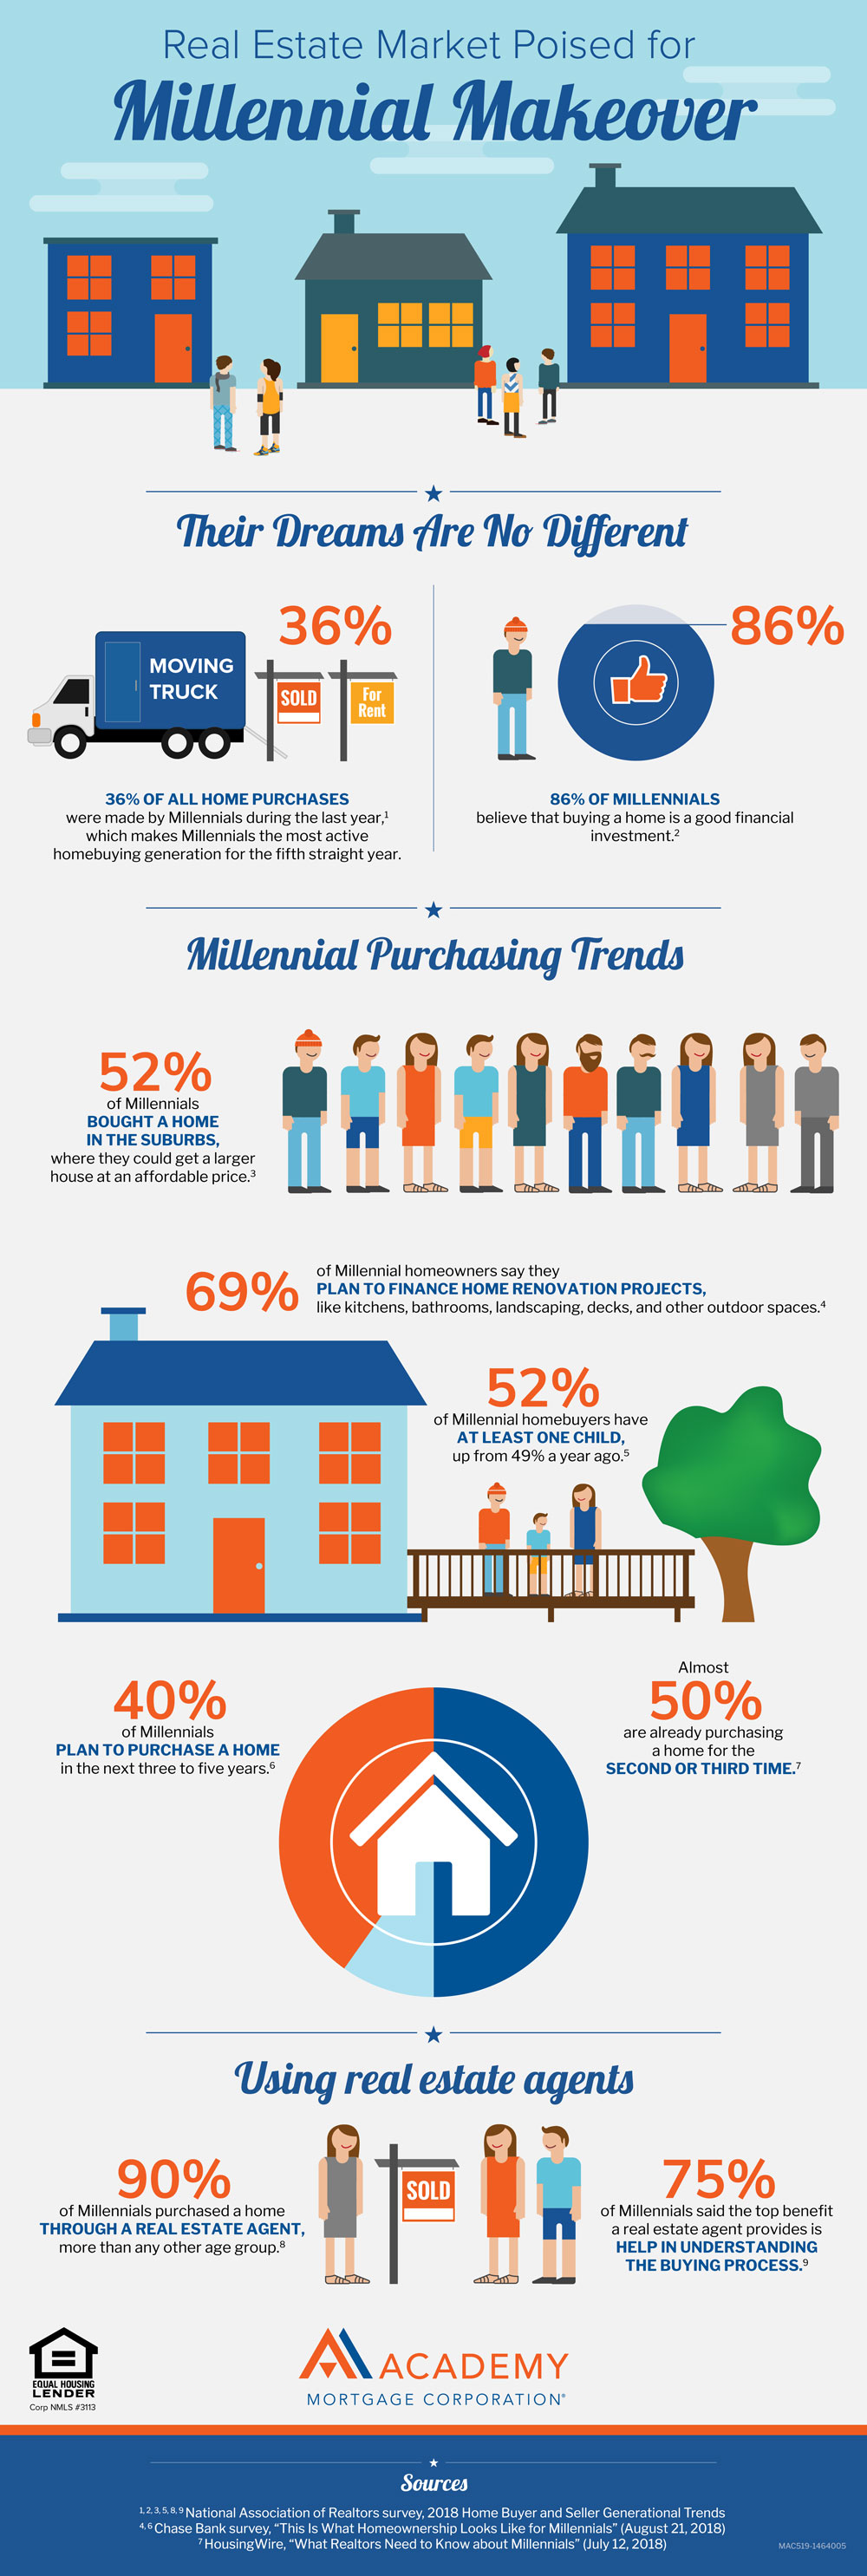 Millenial-Makeover-Infographic